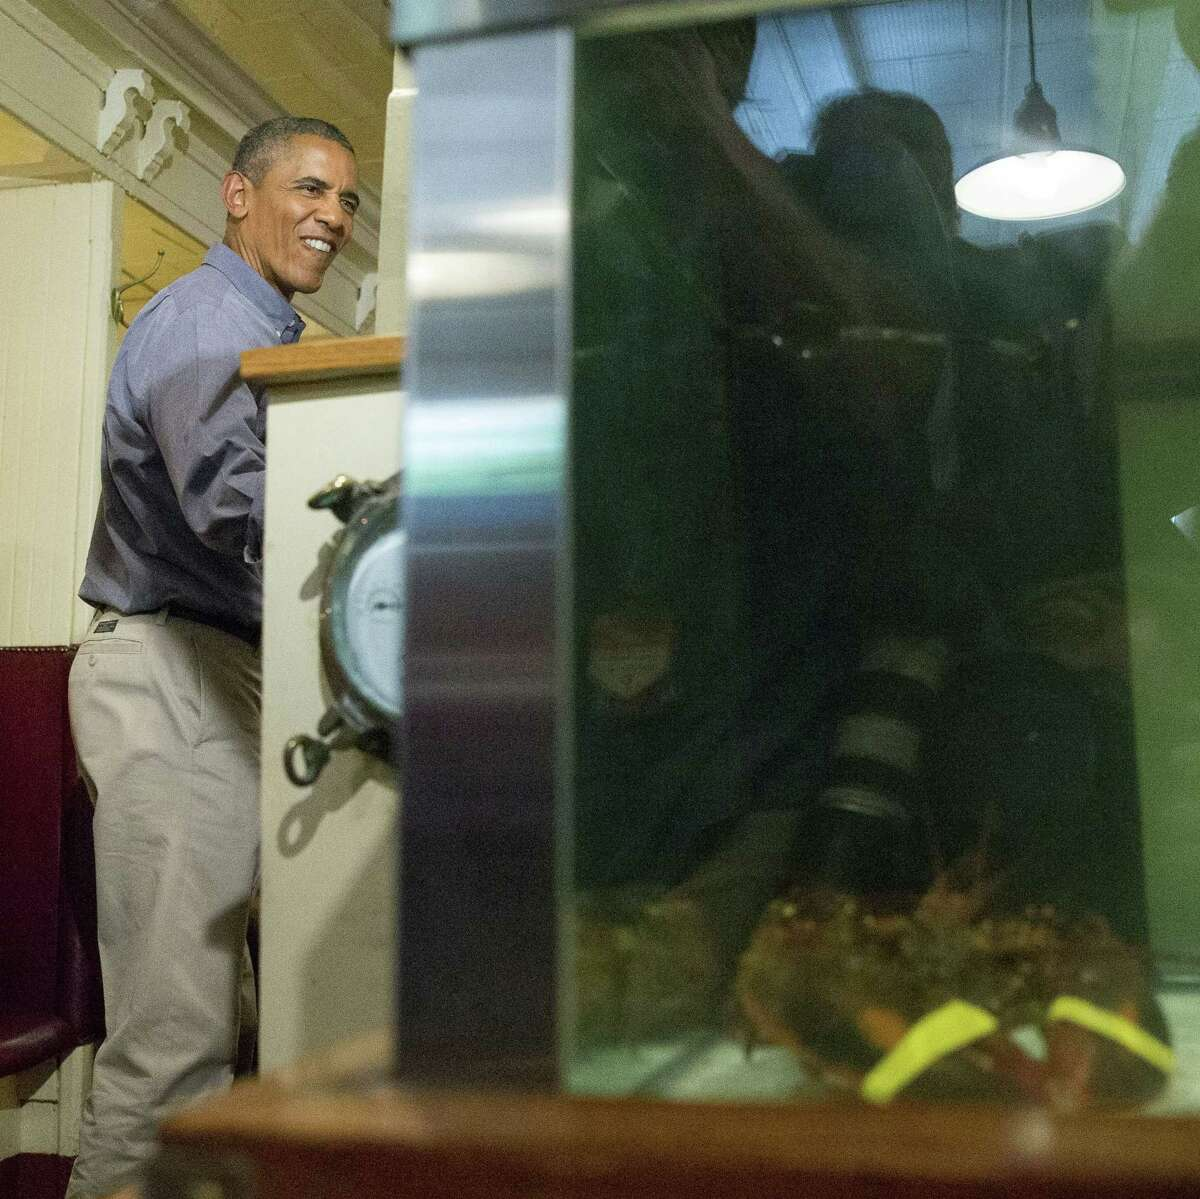 President Barack Obama greets people at Ye Olde Union Oyster House, Monday, Sept. 7, 2015, in Boston. Obama signed an Executive Order requiring federal contractors to offer their employees up to seven days of paid sick leave per year.